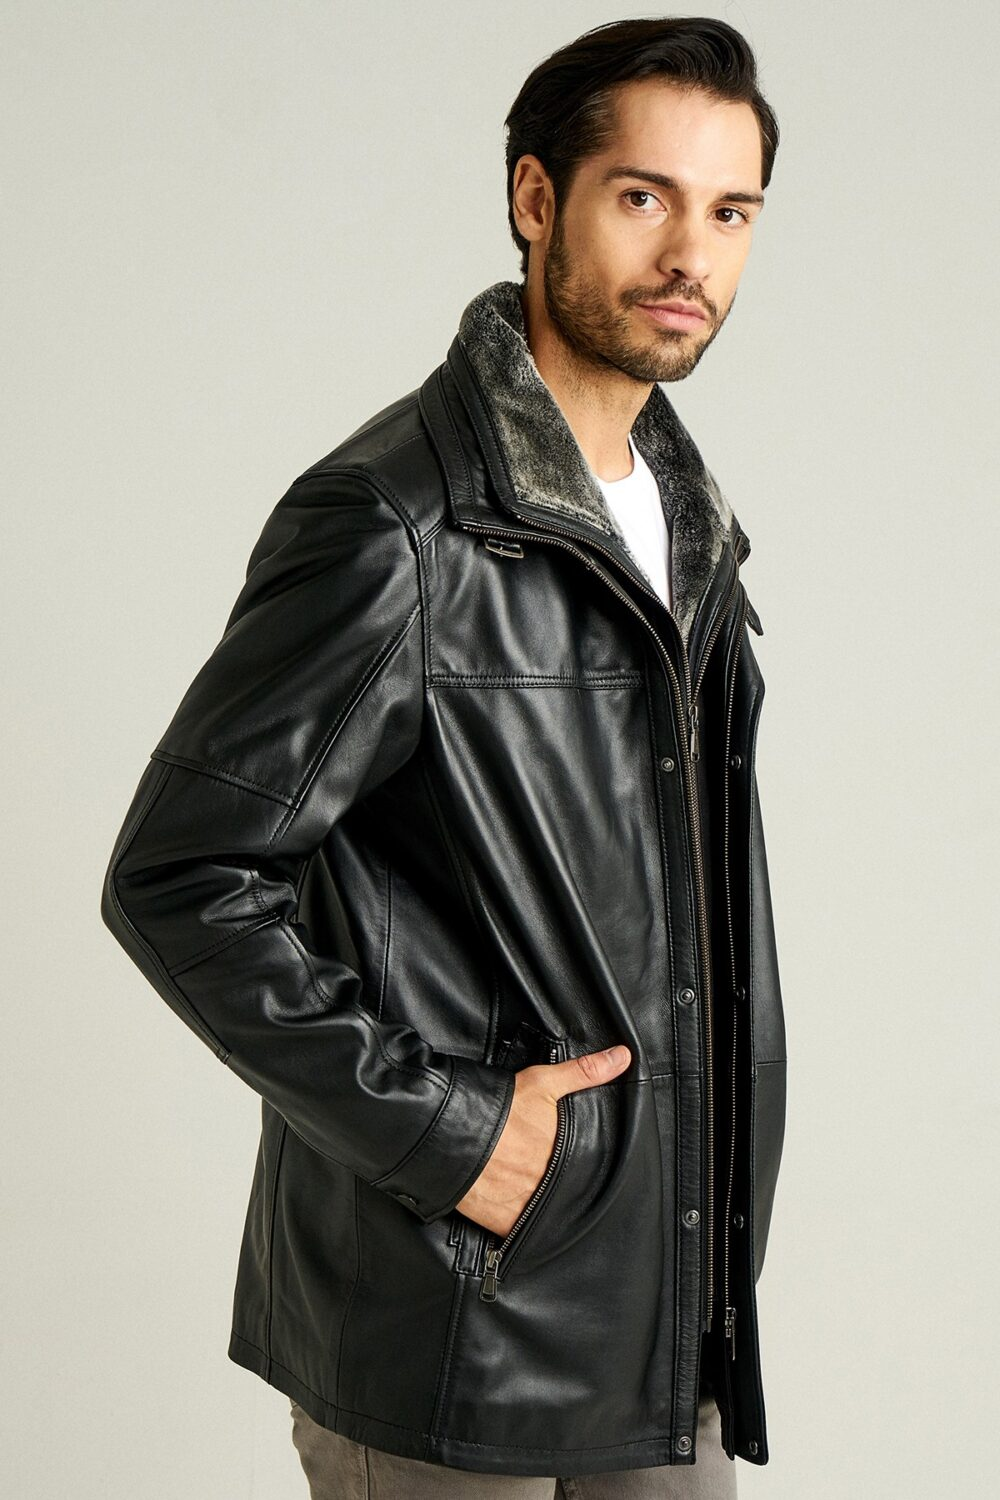 Leather Jacket In Winter